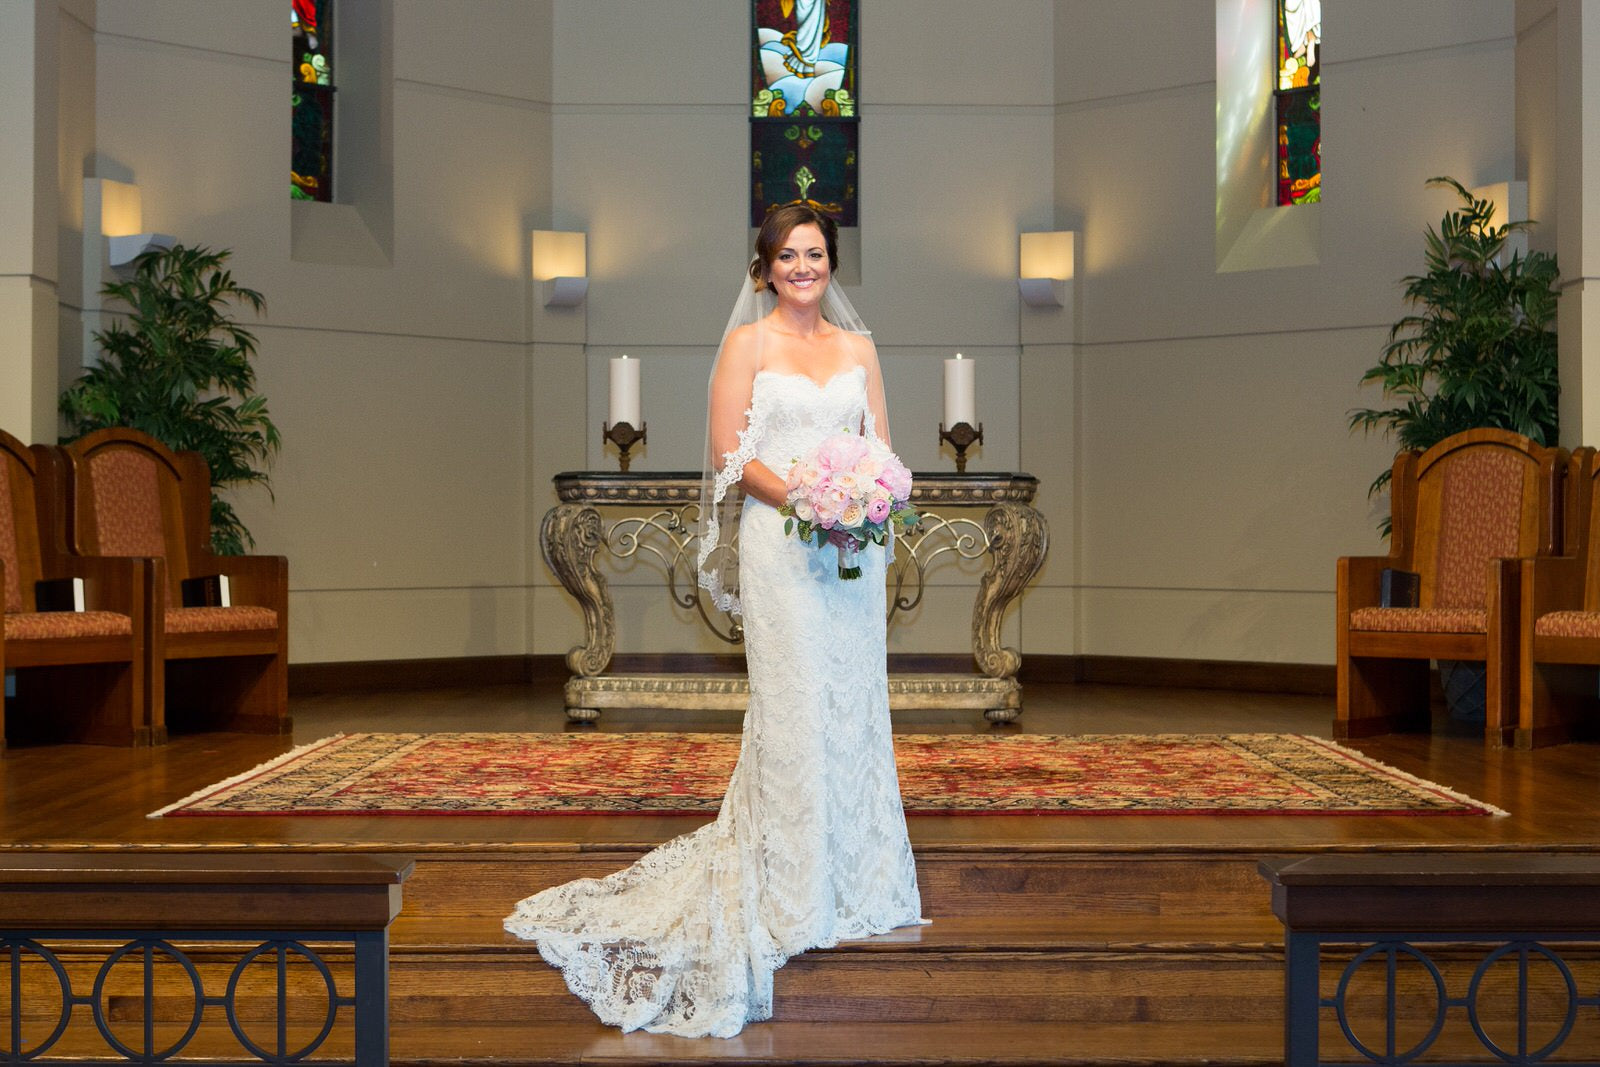 church wedding with bride in lace fingertip length wedding veil